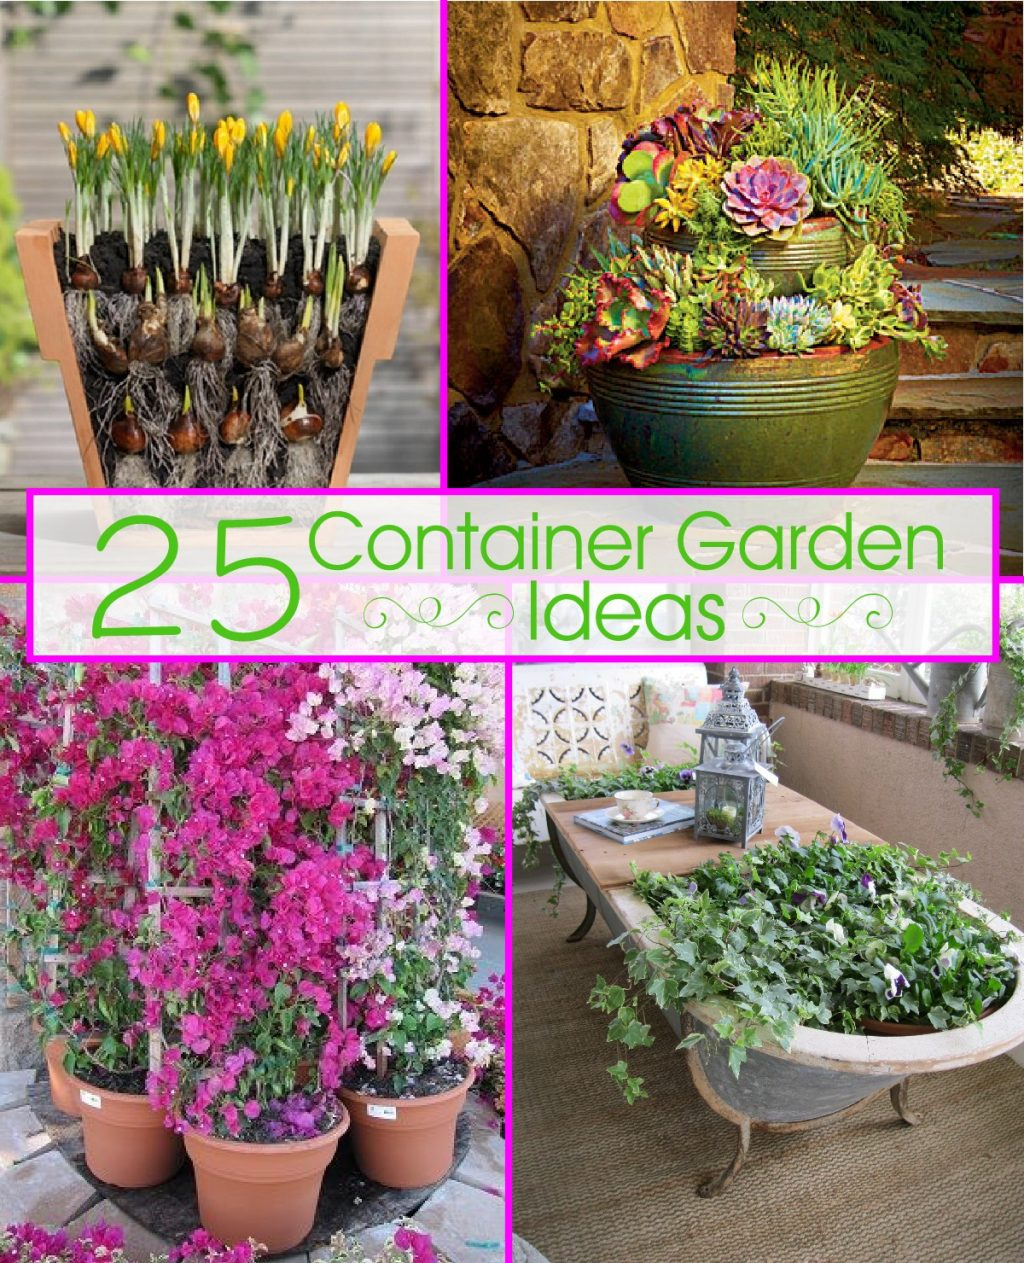 Garden Design Garden Design with Container Garden Plans Container